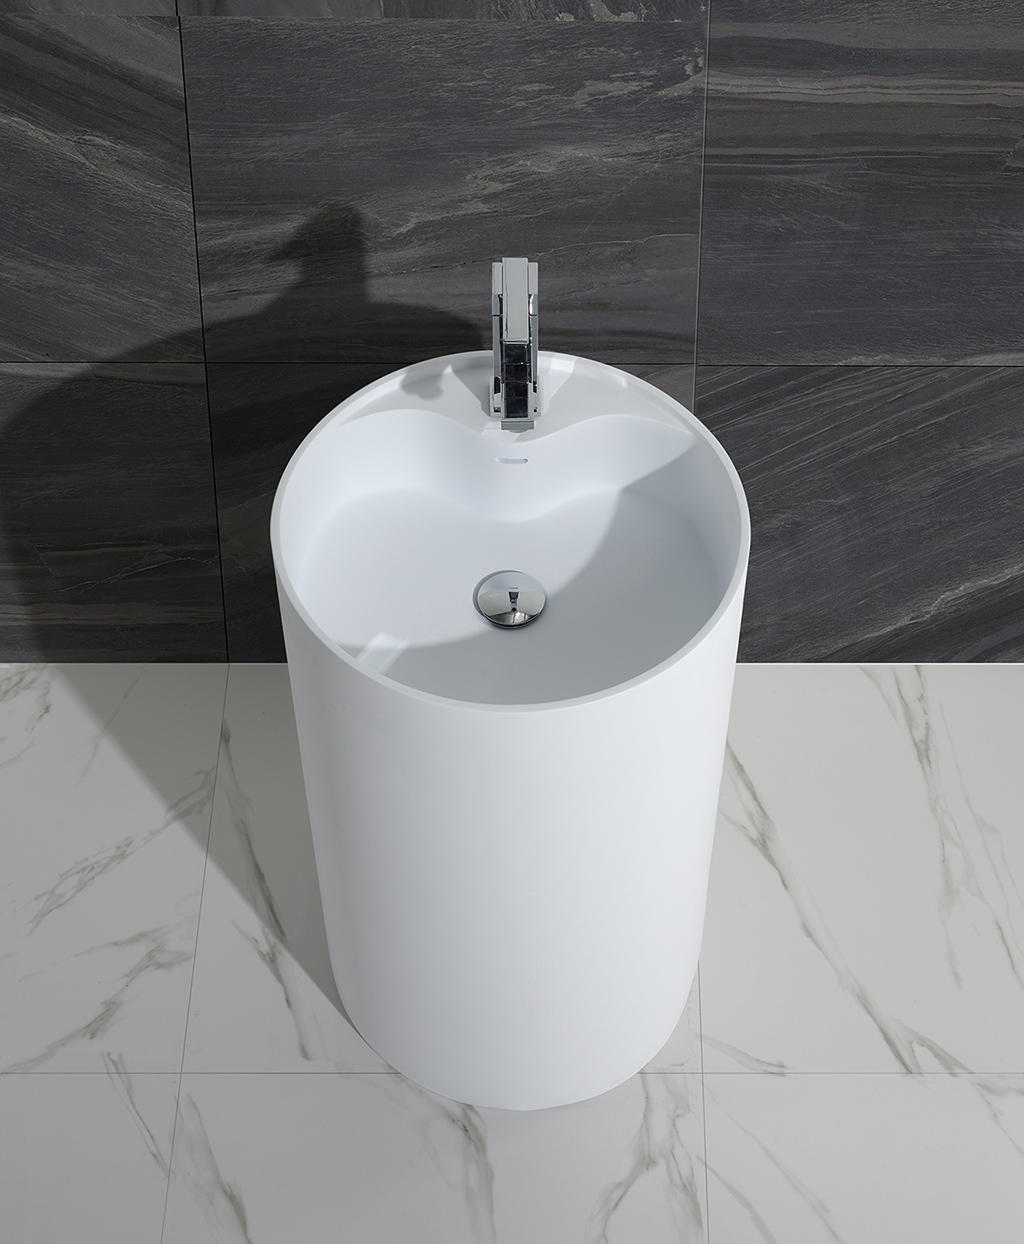 KingKonree standard free standing wash basin supplier for bathroom-1